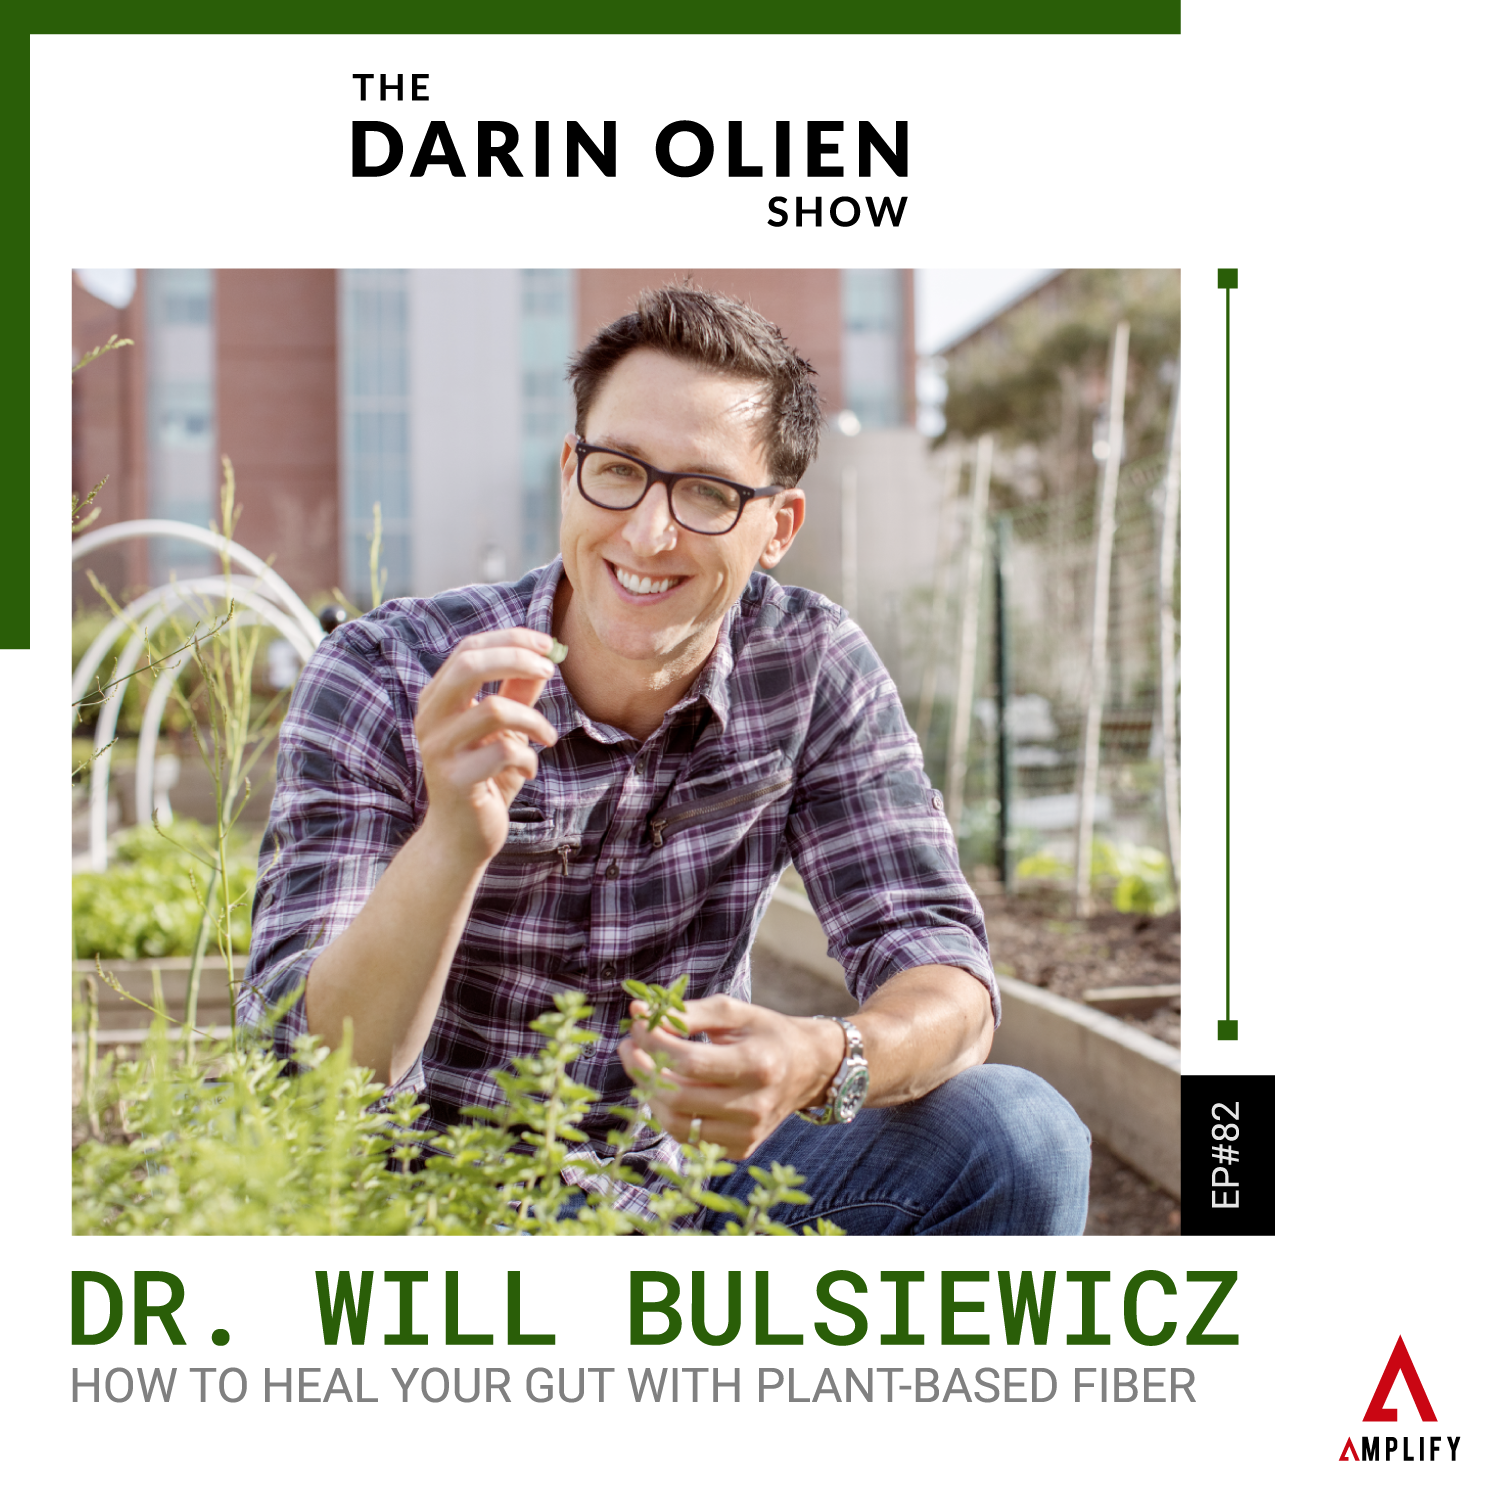 decorative image with the episode title and a picture of Dr. Will Bulsiewicz